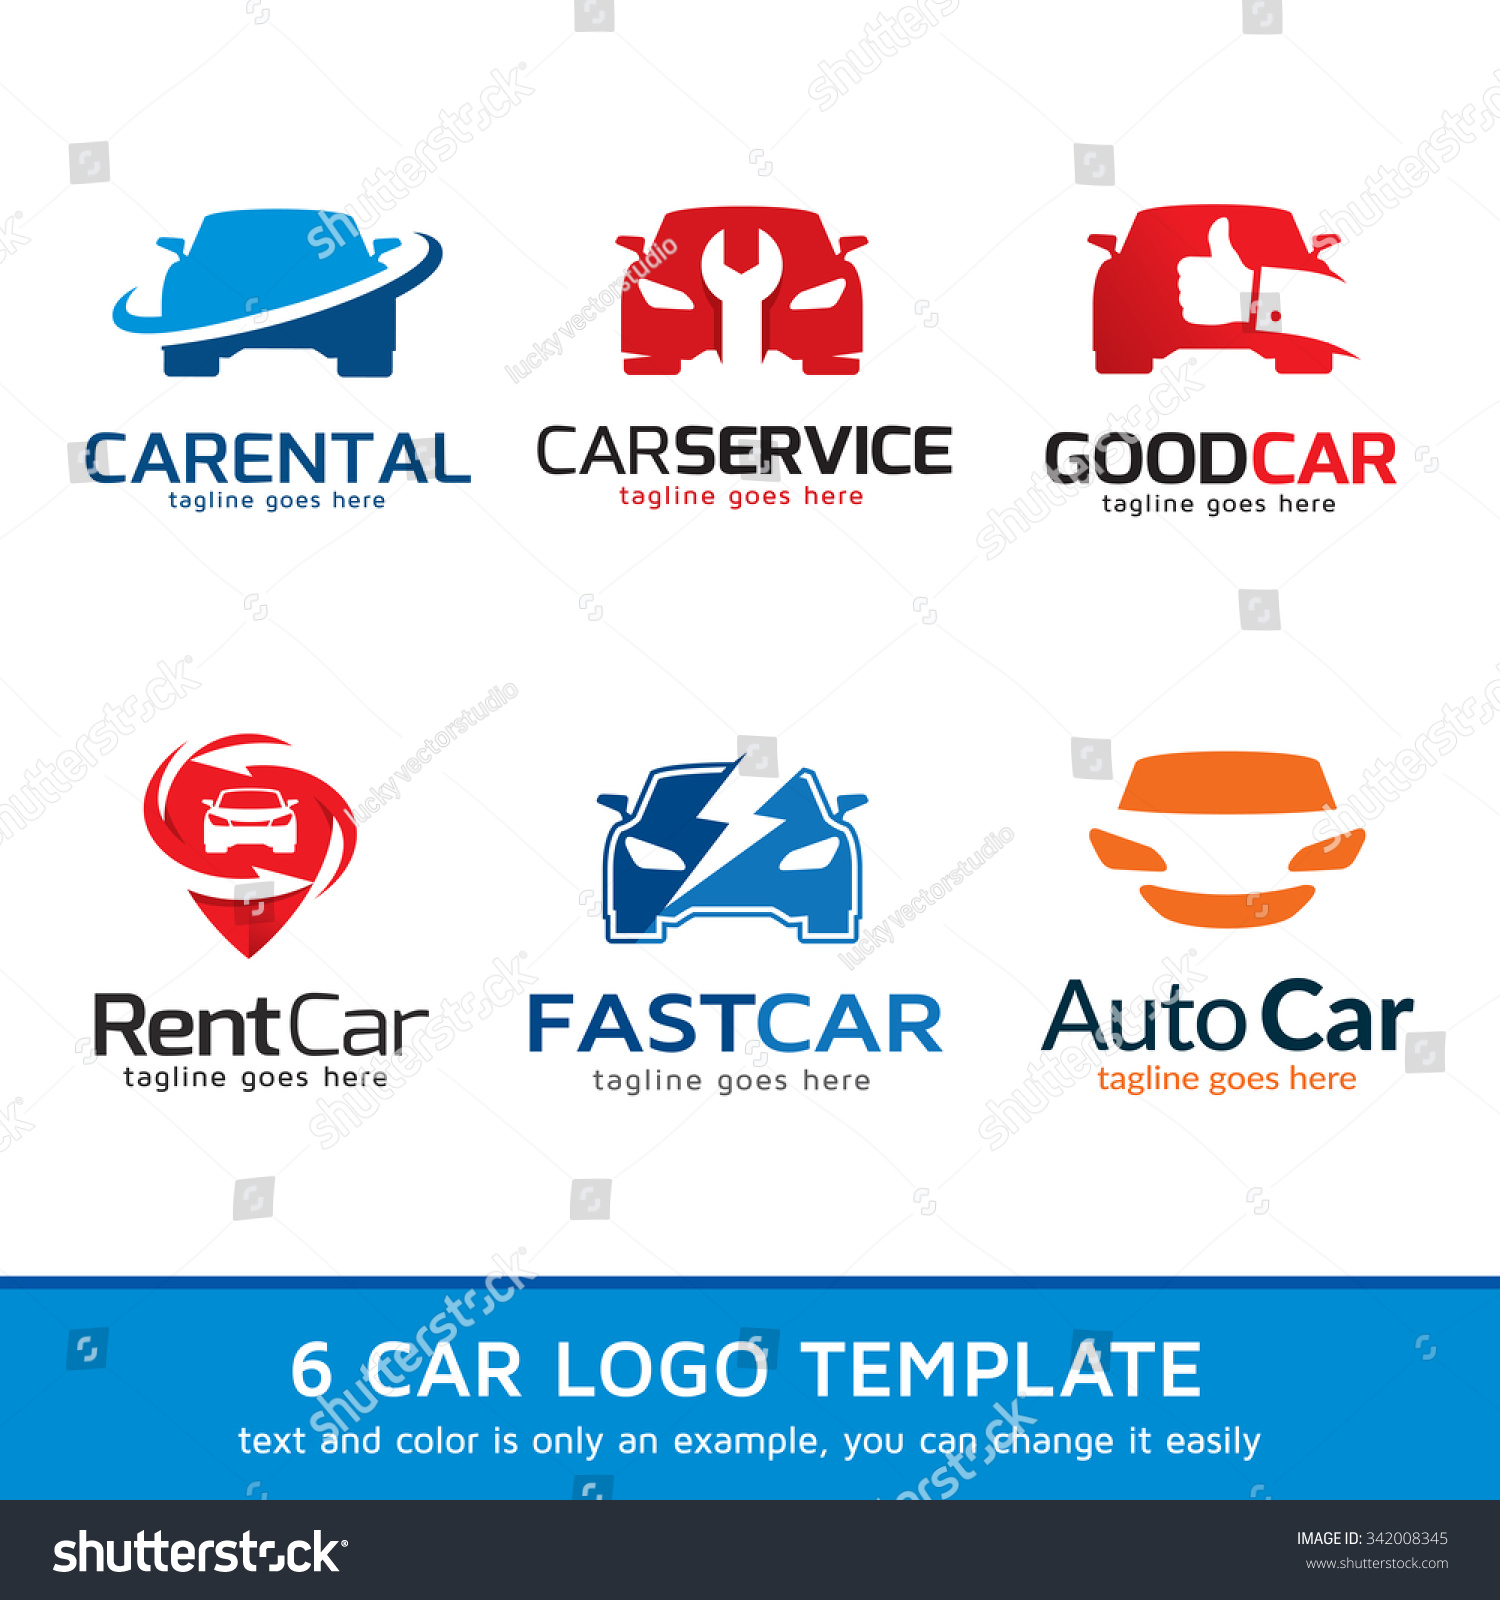 Automotive Car Logo Template Design Vector Stockvector Rechtenvrij